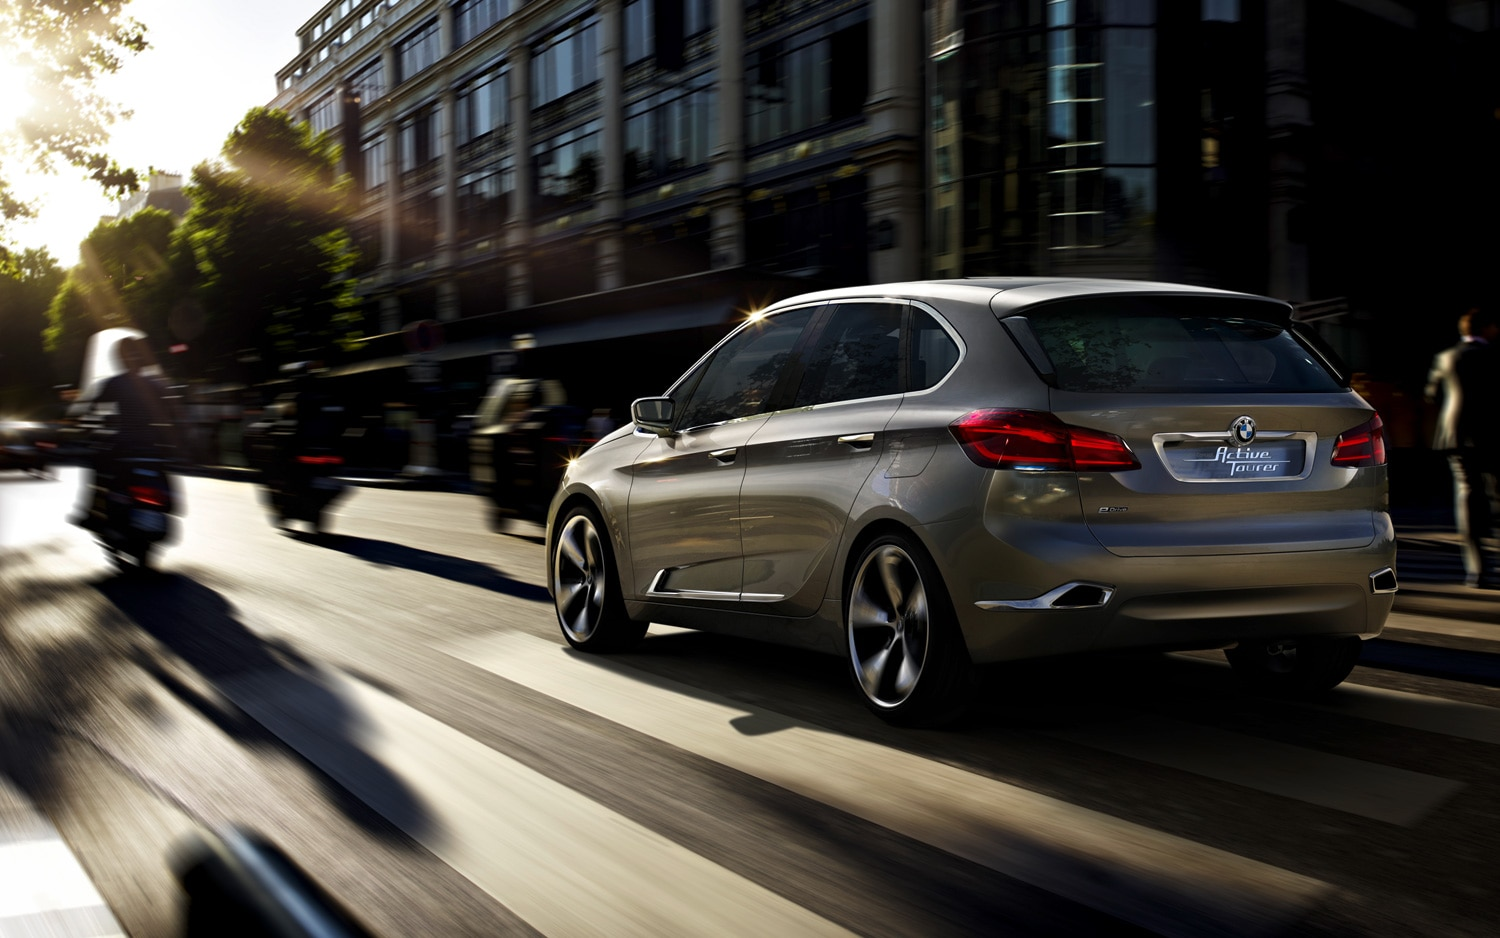 BMW Concept Active Tourer Rear View In Traffic11